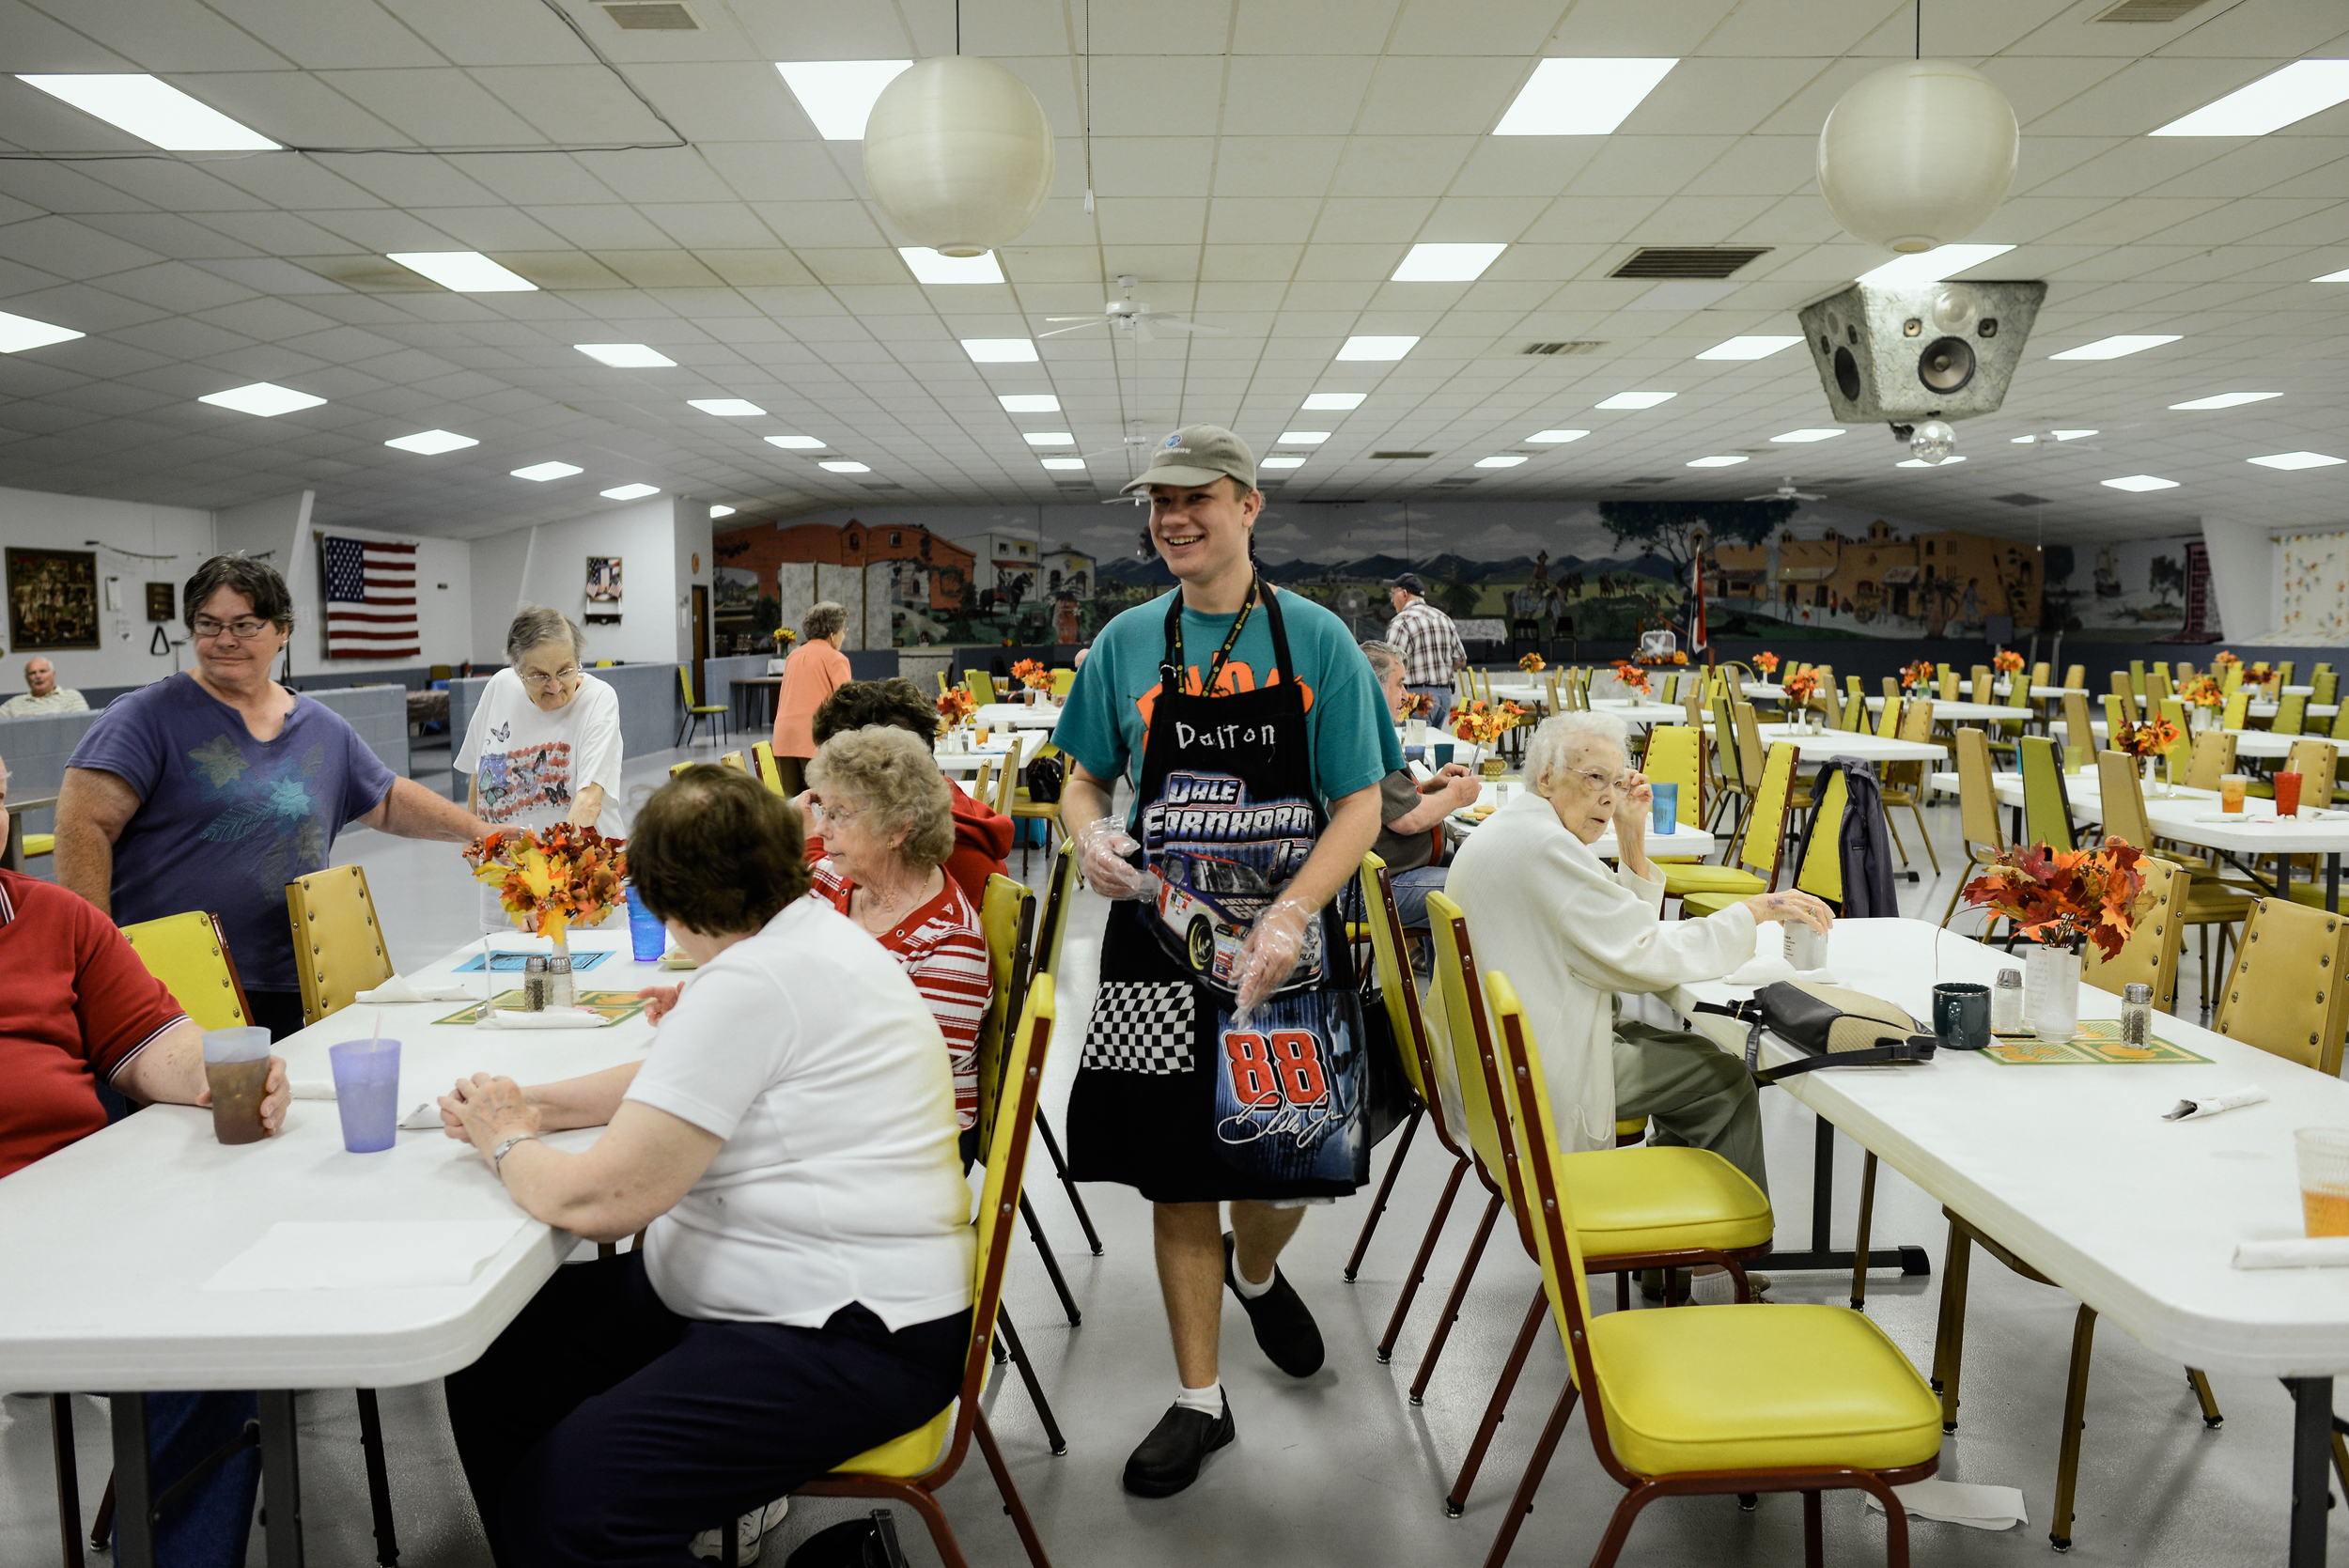 Trenton, Missouri. 2013.  Dalton helps serve lunch at the local senior center. He volunteers multiple times a week because he enjoys interacting with different members of the community.